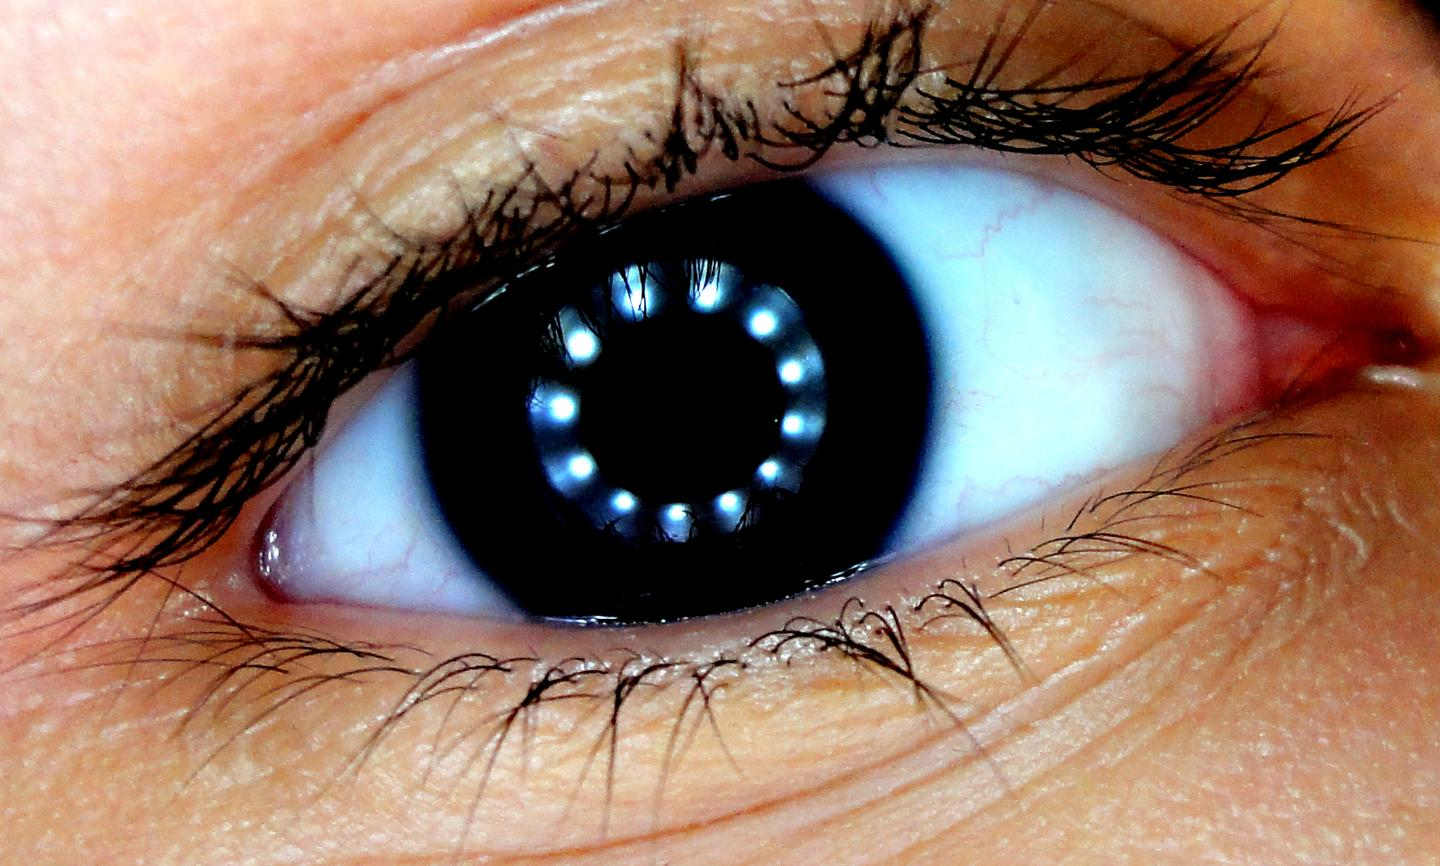 The RedEye system is able to provide continuous vision without compromising privacy